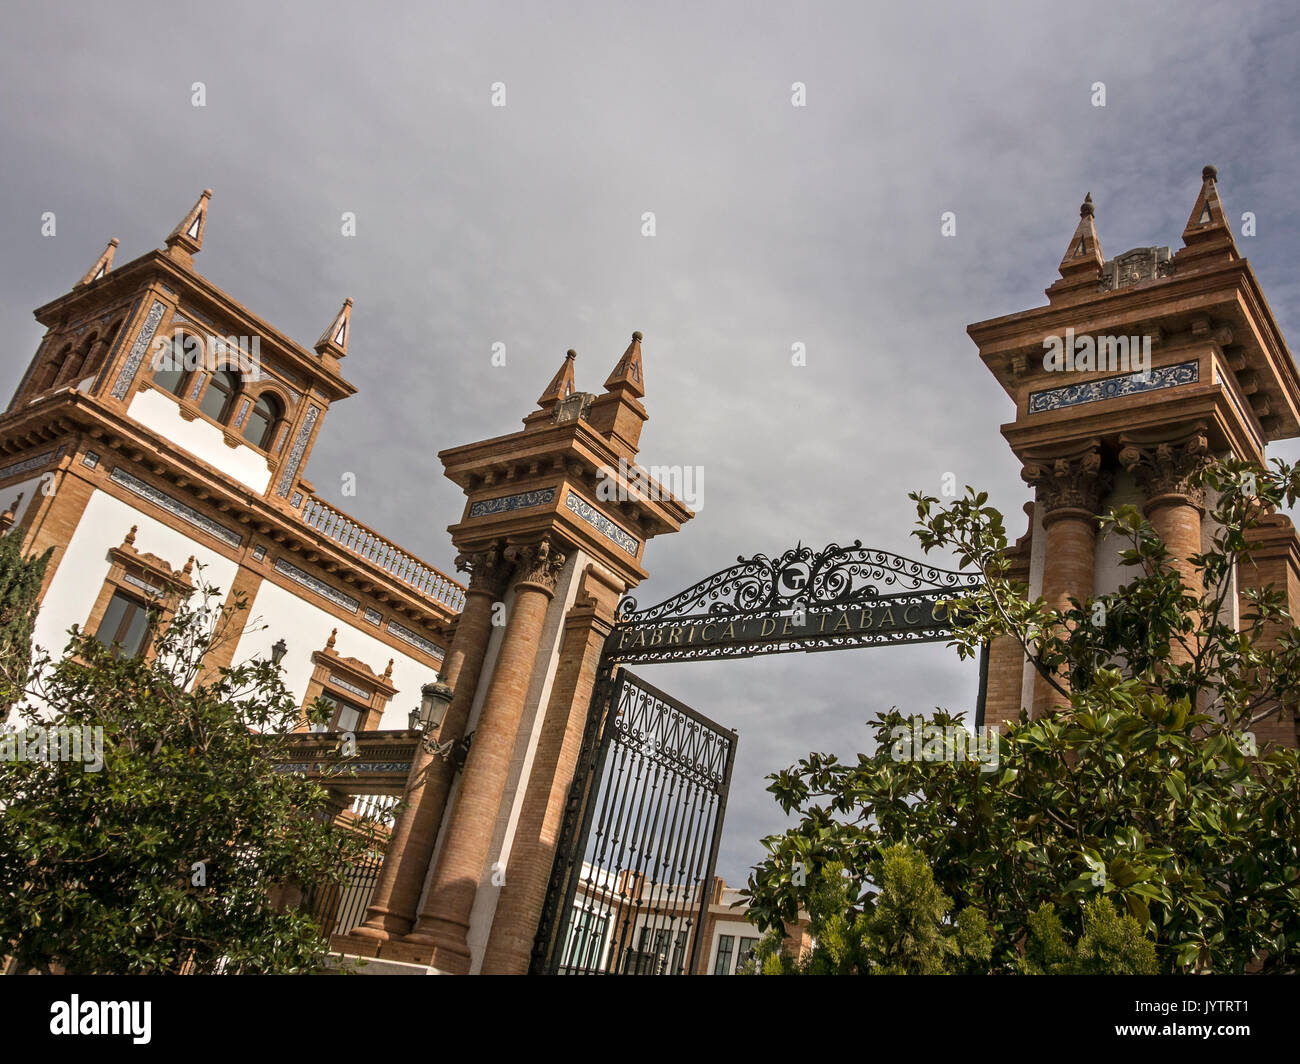 MALAGA, SPAIN: Entrance gates to the Motor Museum - Stock Image